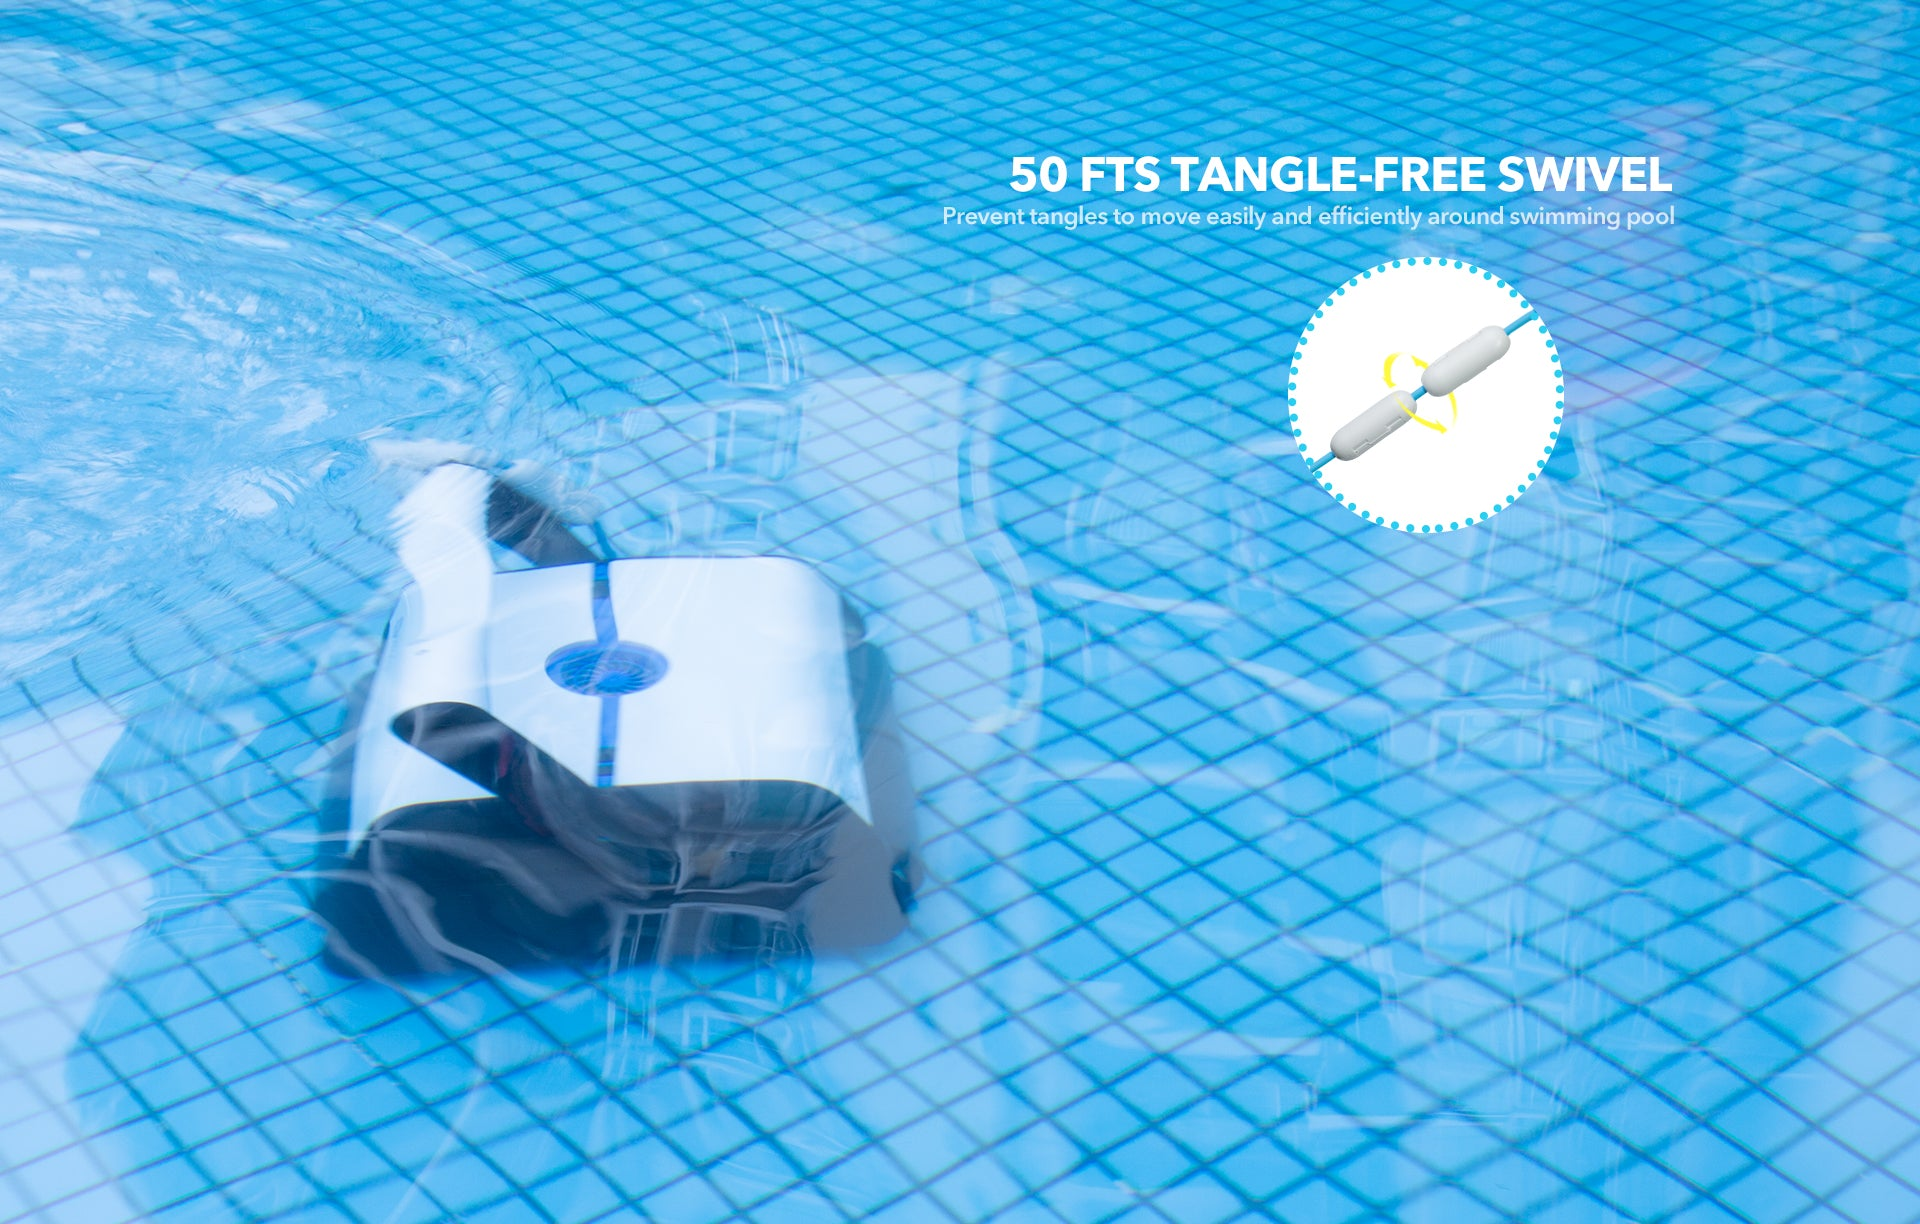 Paxcess Pool Cleaner with 50 Feet Tangle-Free Cord